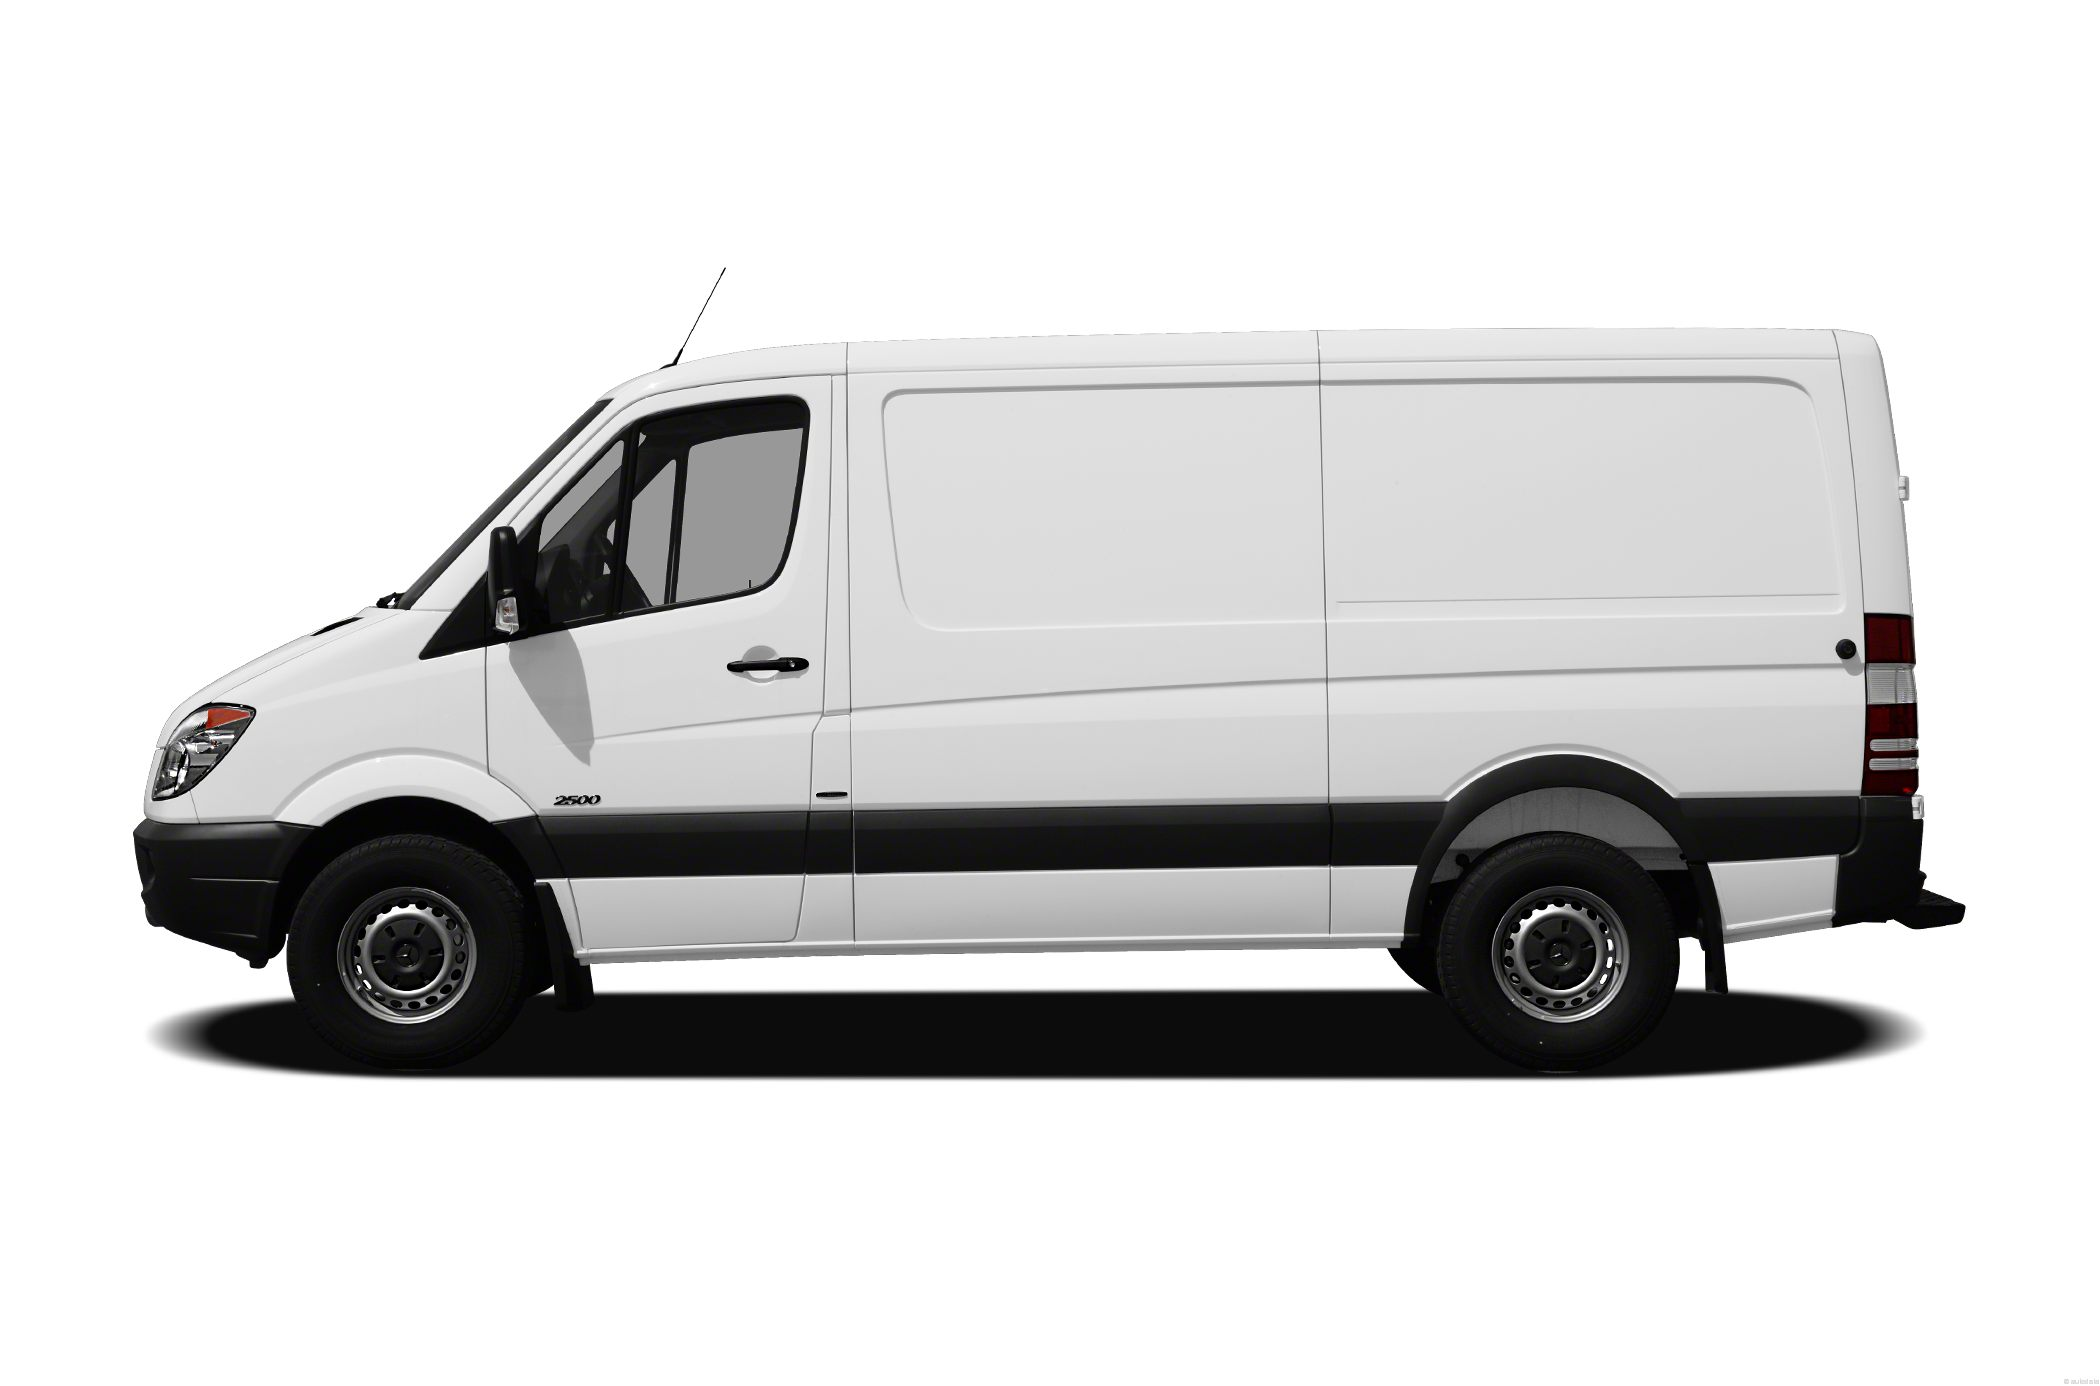 2012 Mercedes Benz Sprinter #1